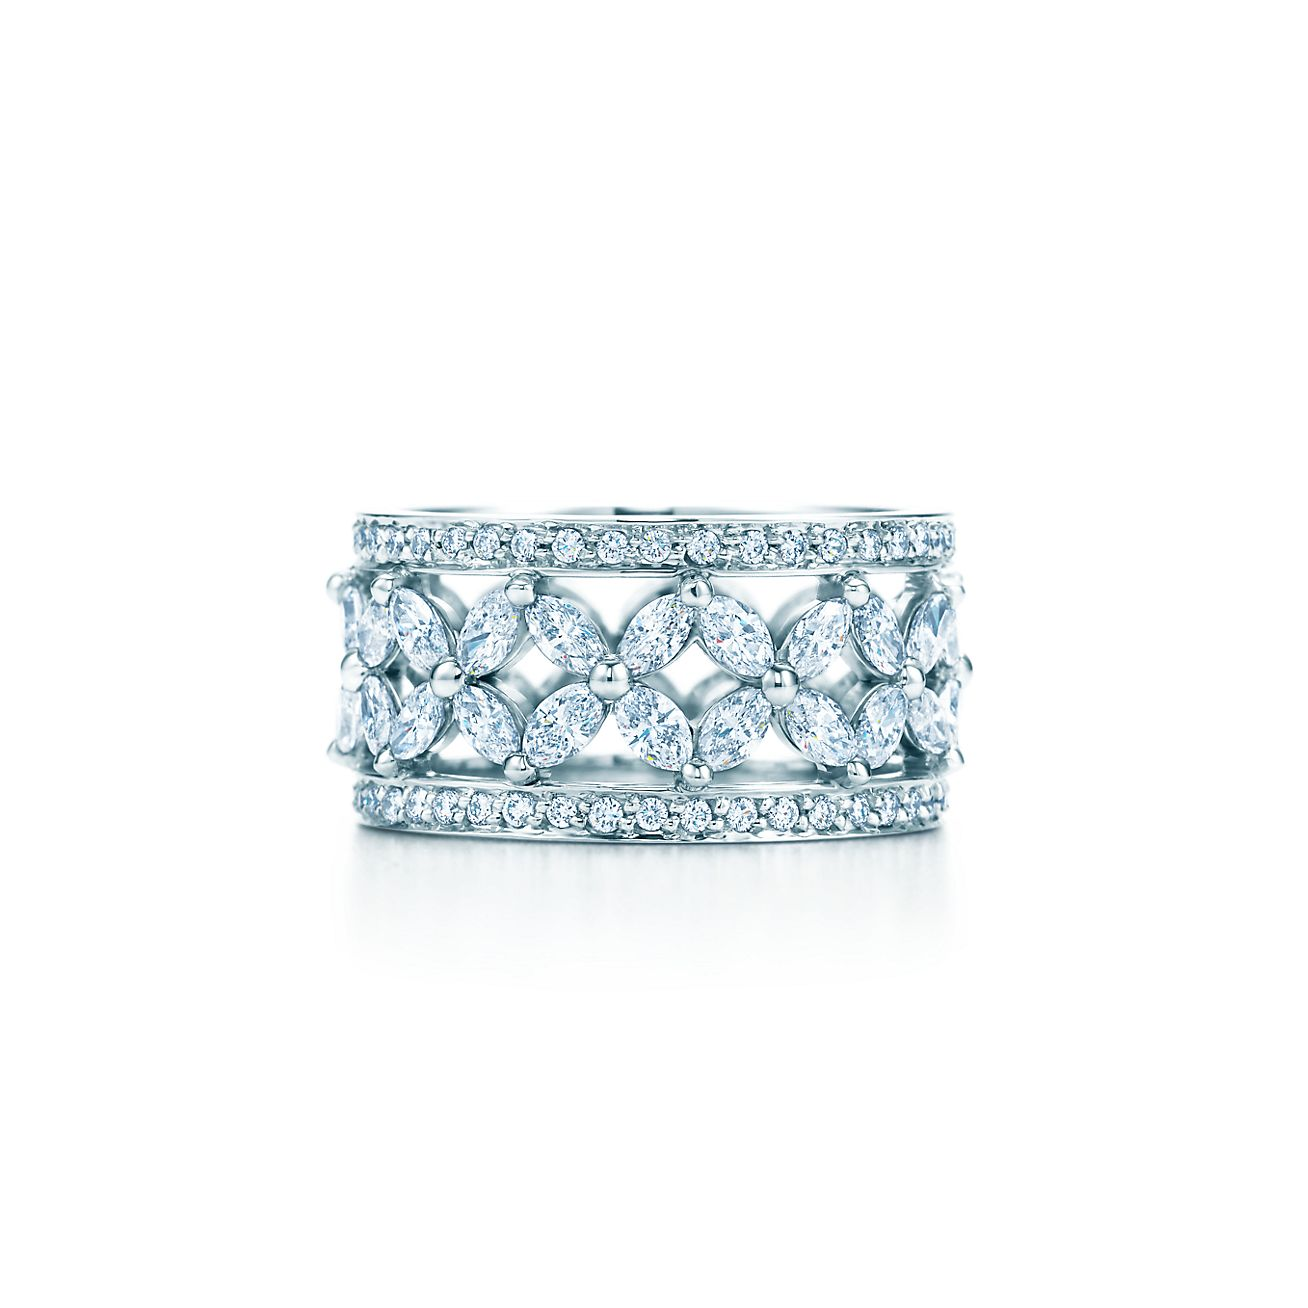 Tiffany Victoria 174 Band Ring In Platinum With Diamonds